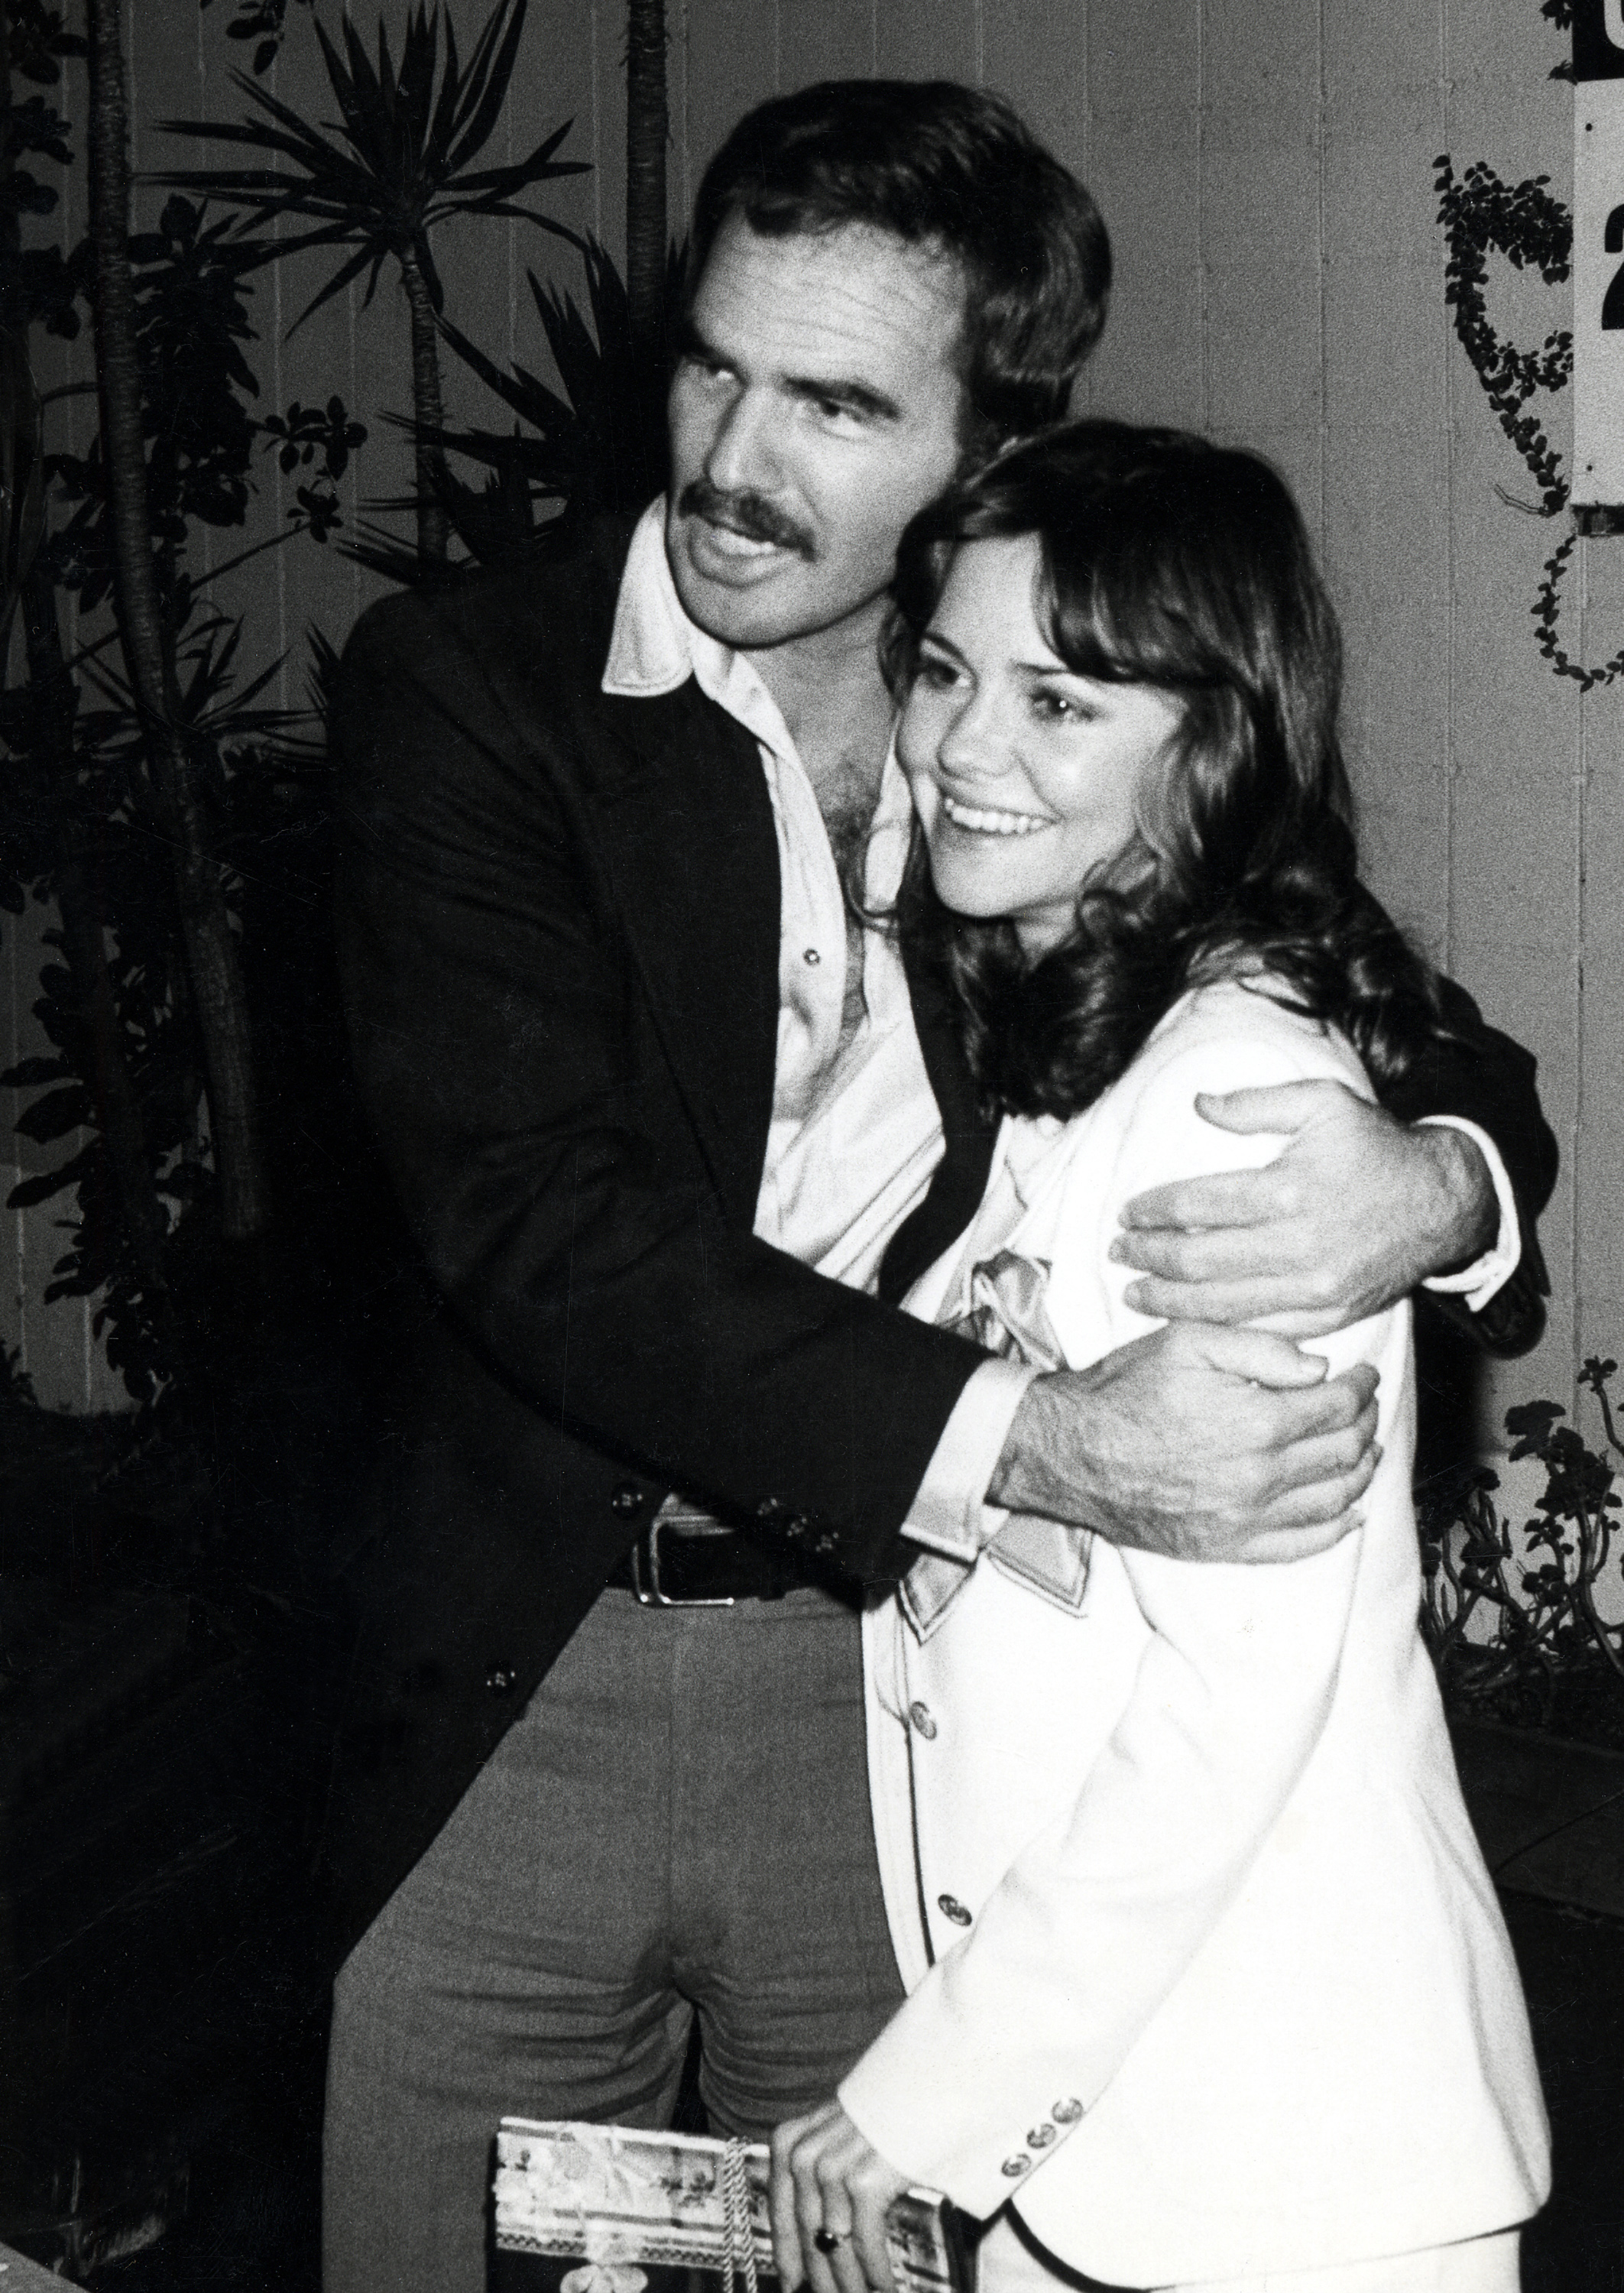 Sally Field and Burt Reynolds' Relationship: Inside Their Hollywood